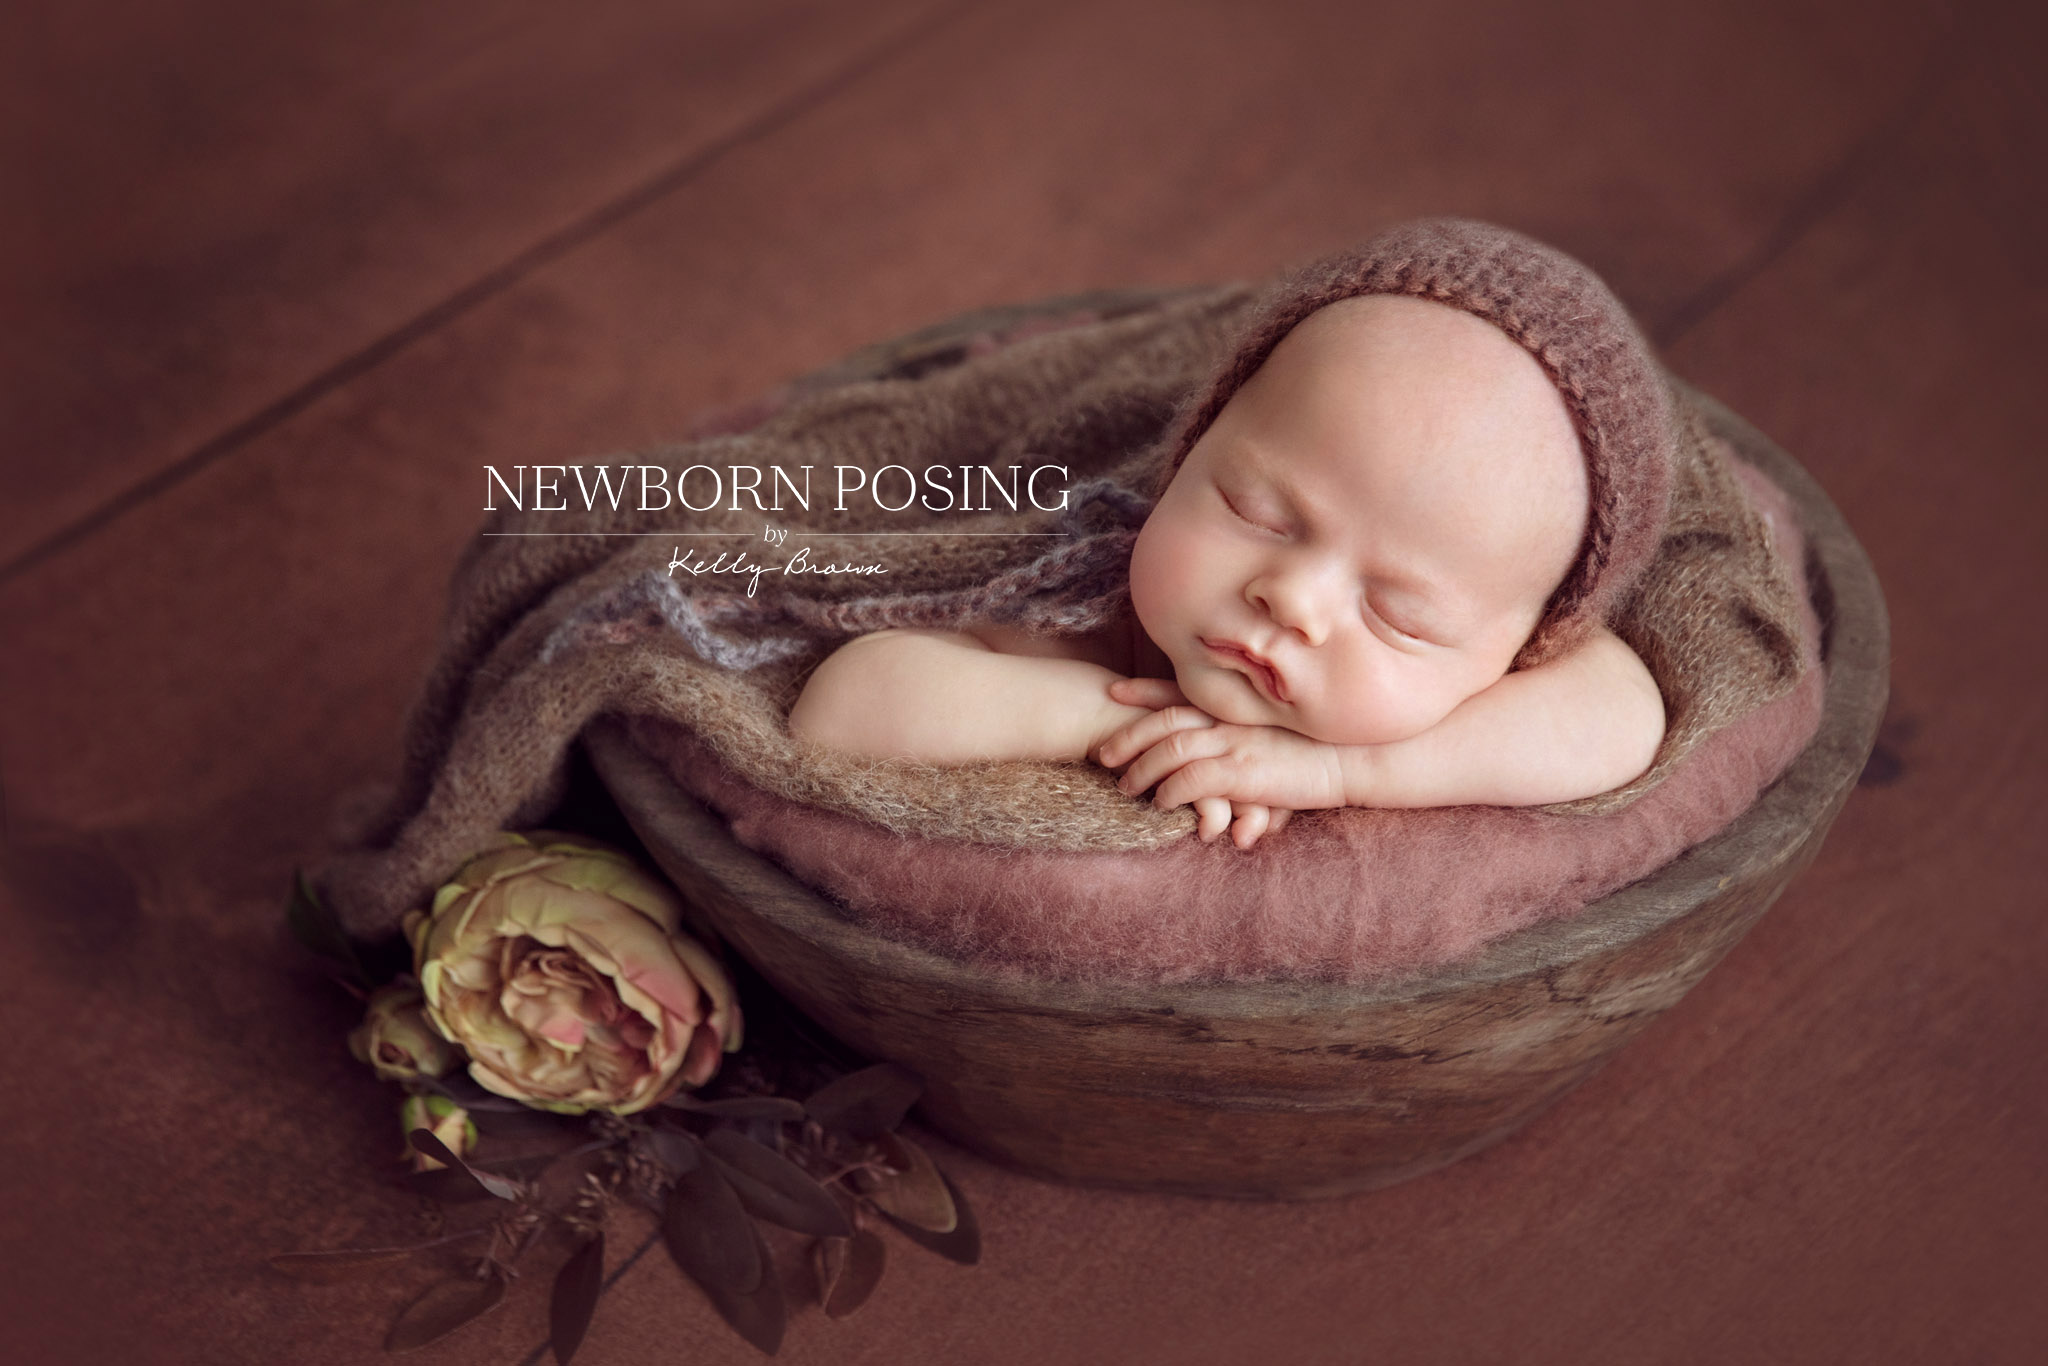 Newborn photography of baby head resting on hands in prop